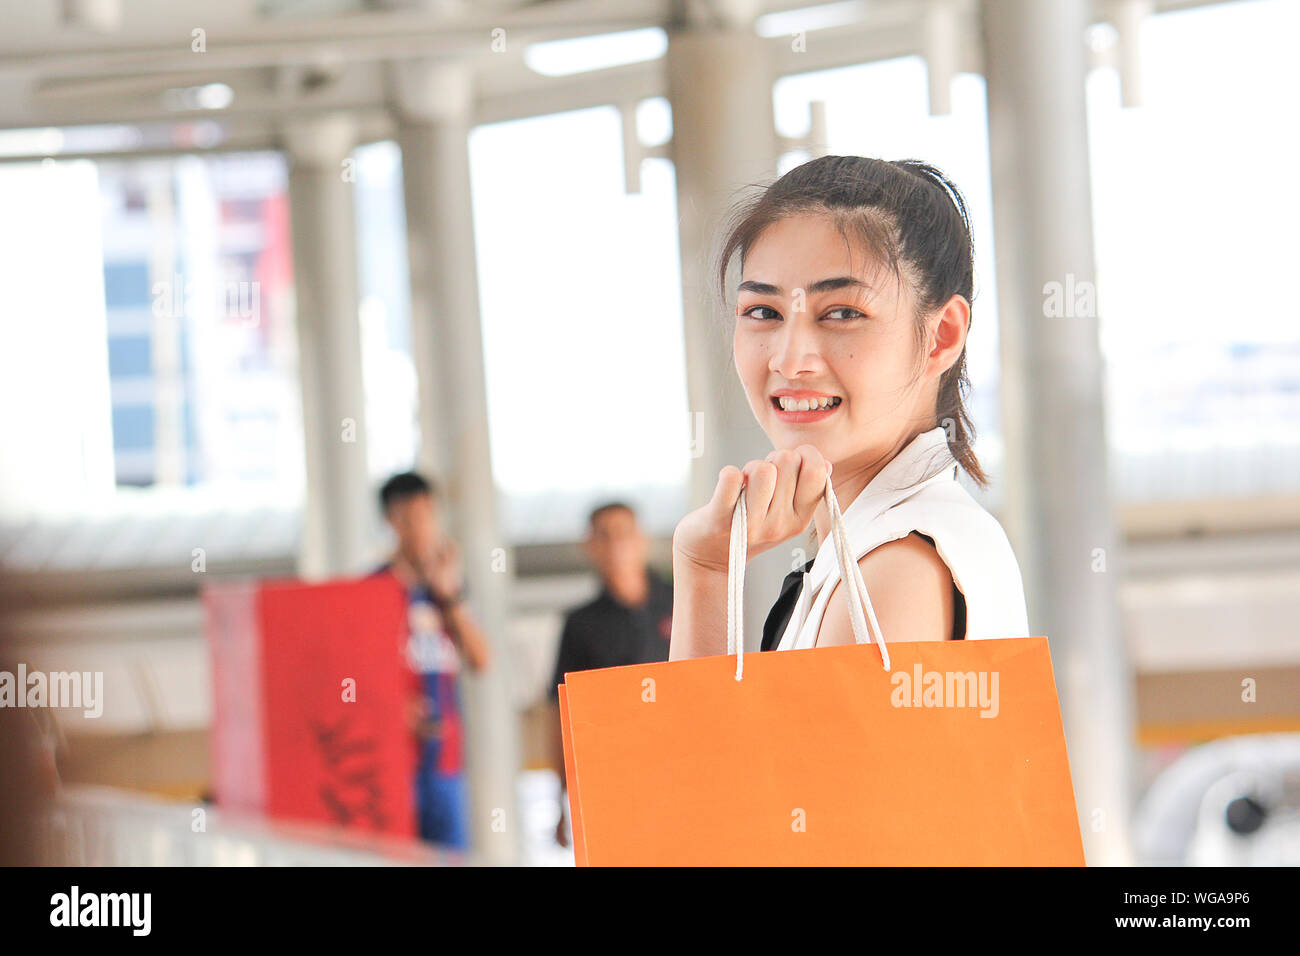 Side View Portrait Of Smiling Young Woman Holding Shopping Bags In Covered Bridge Stock Photo